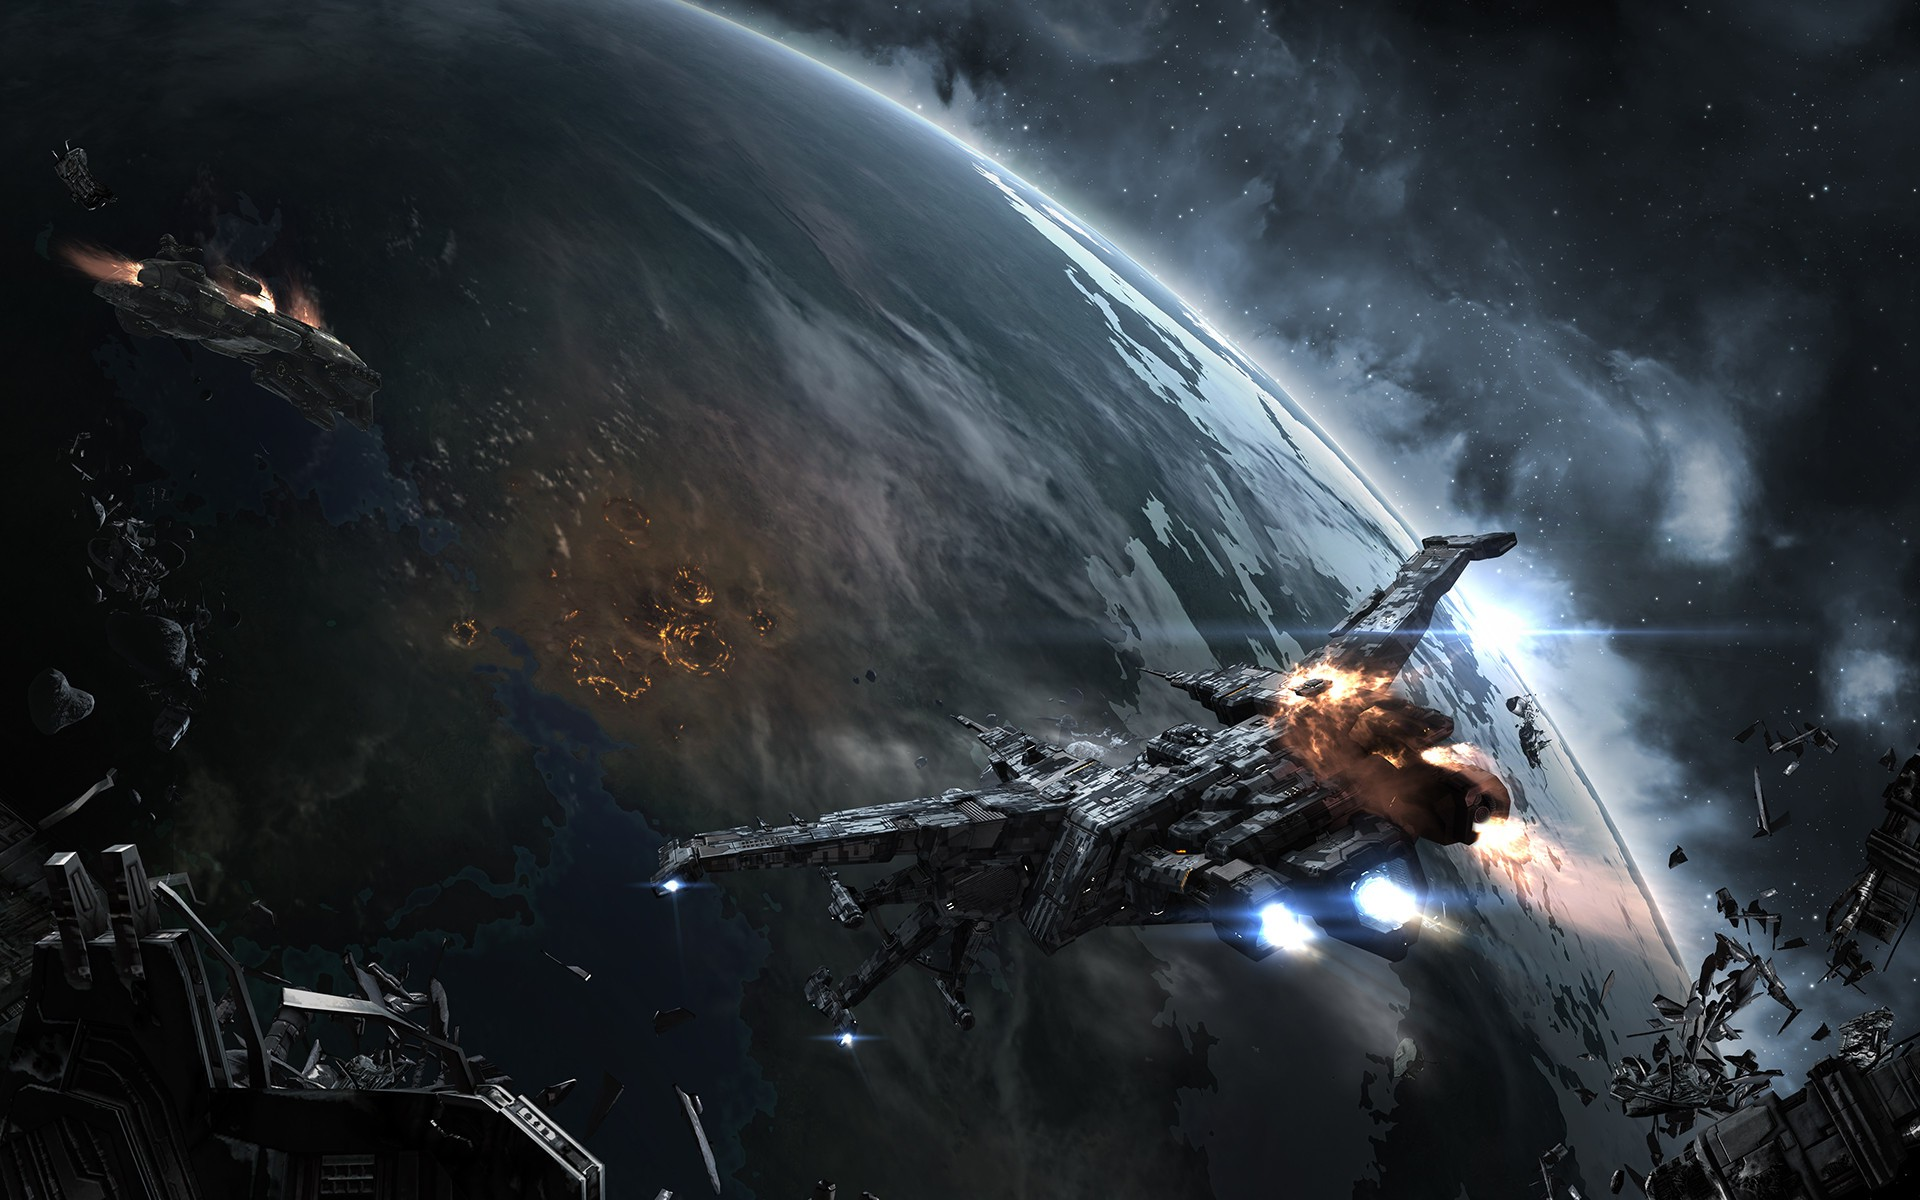 EVE Online Space Spaceship Caldari Space Battle